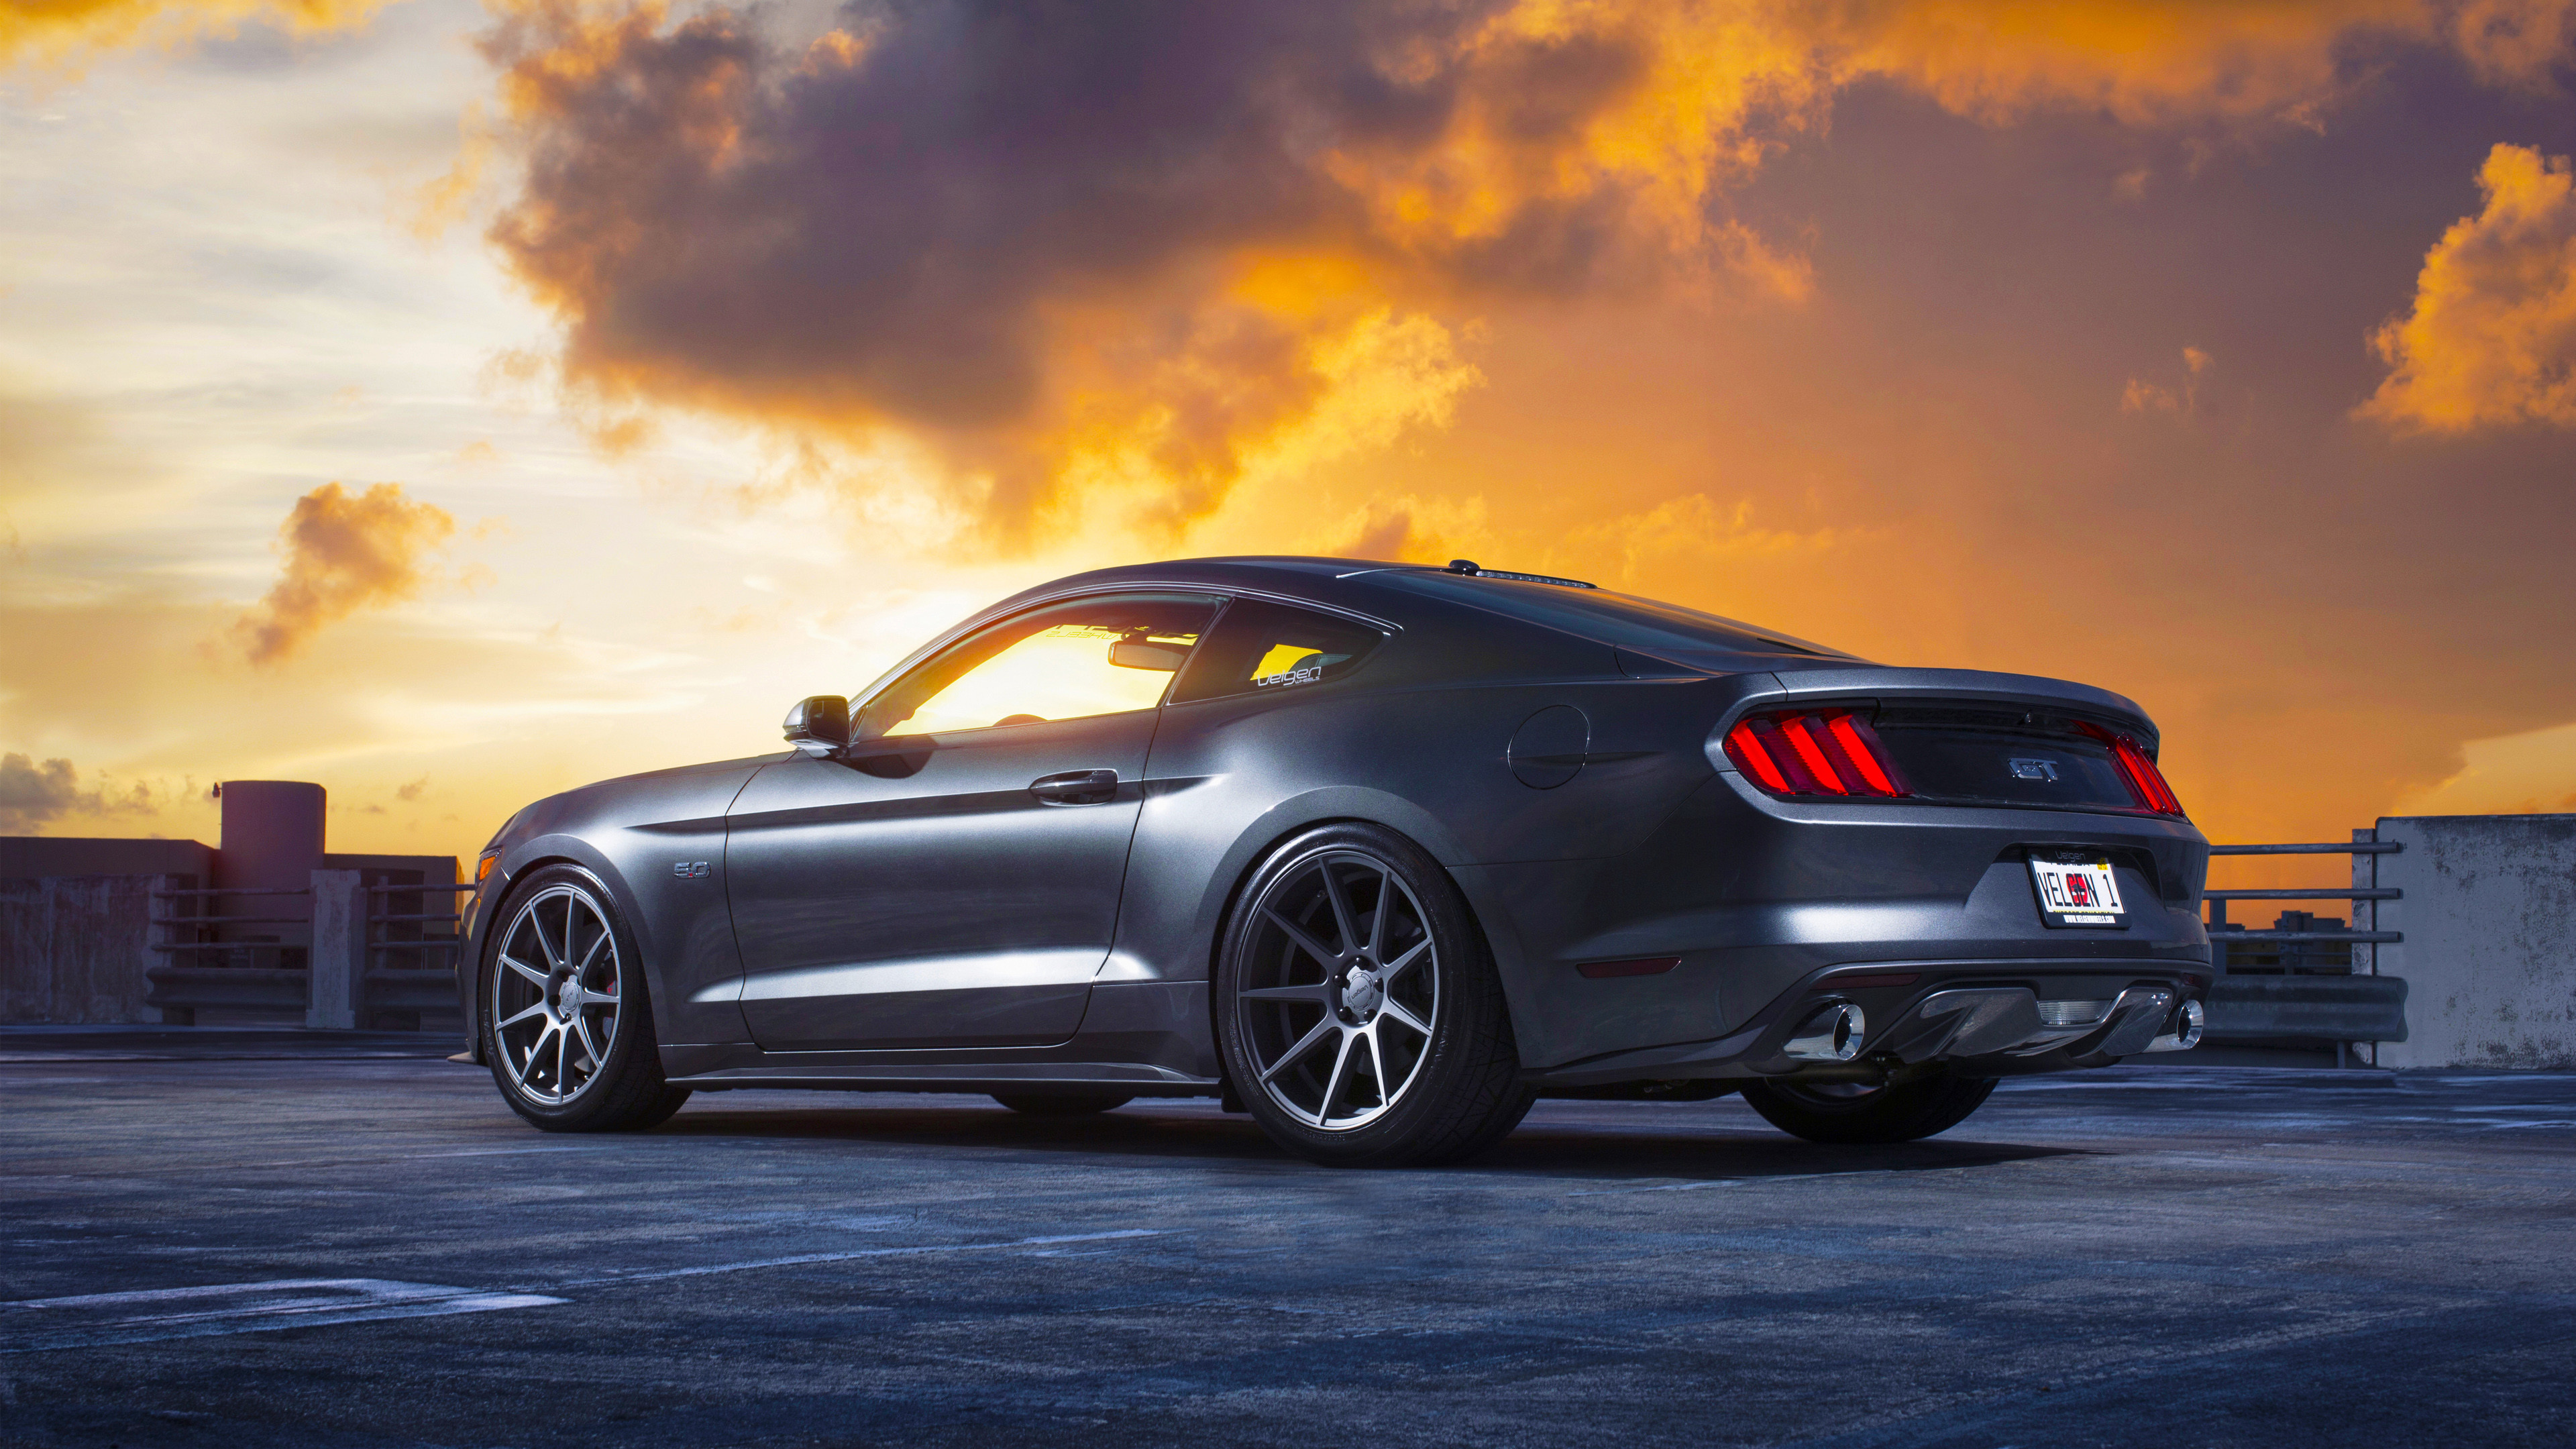 Res: 3840x2160, Tags: Ford Mustang ...